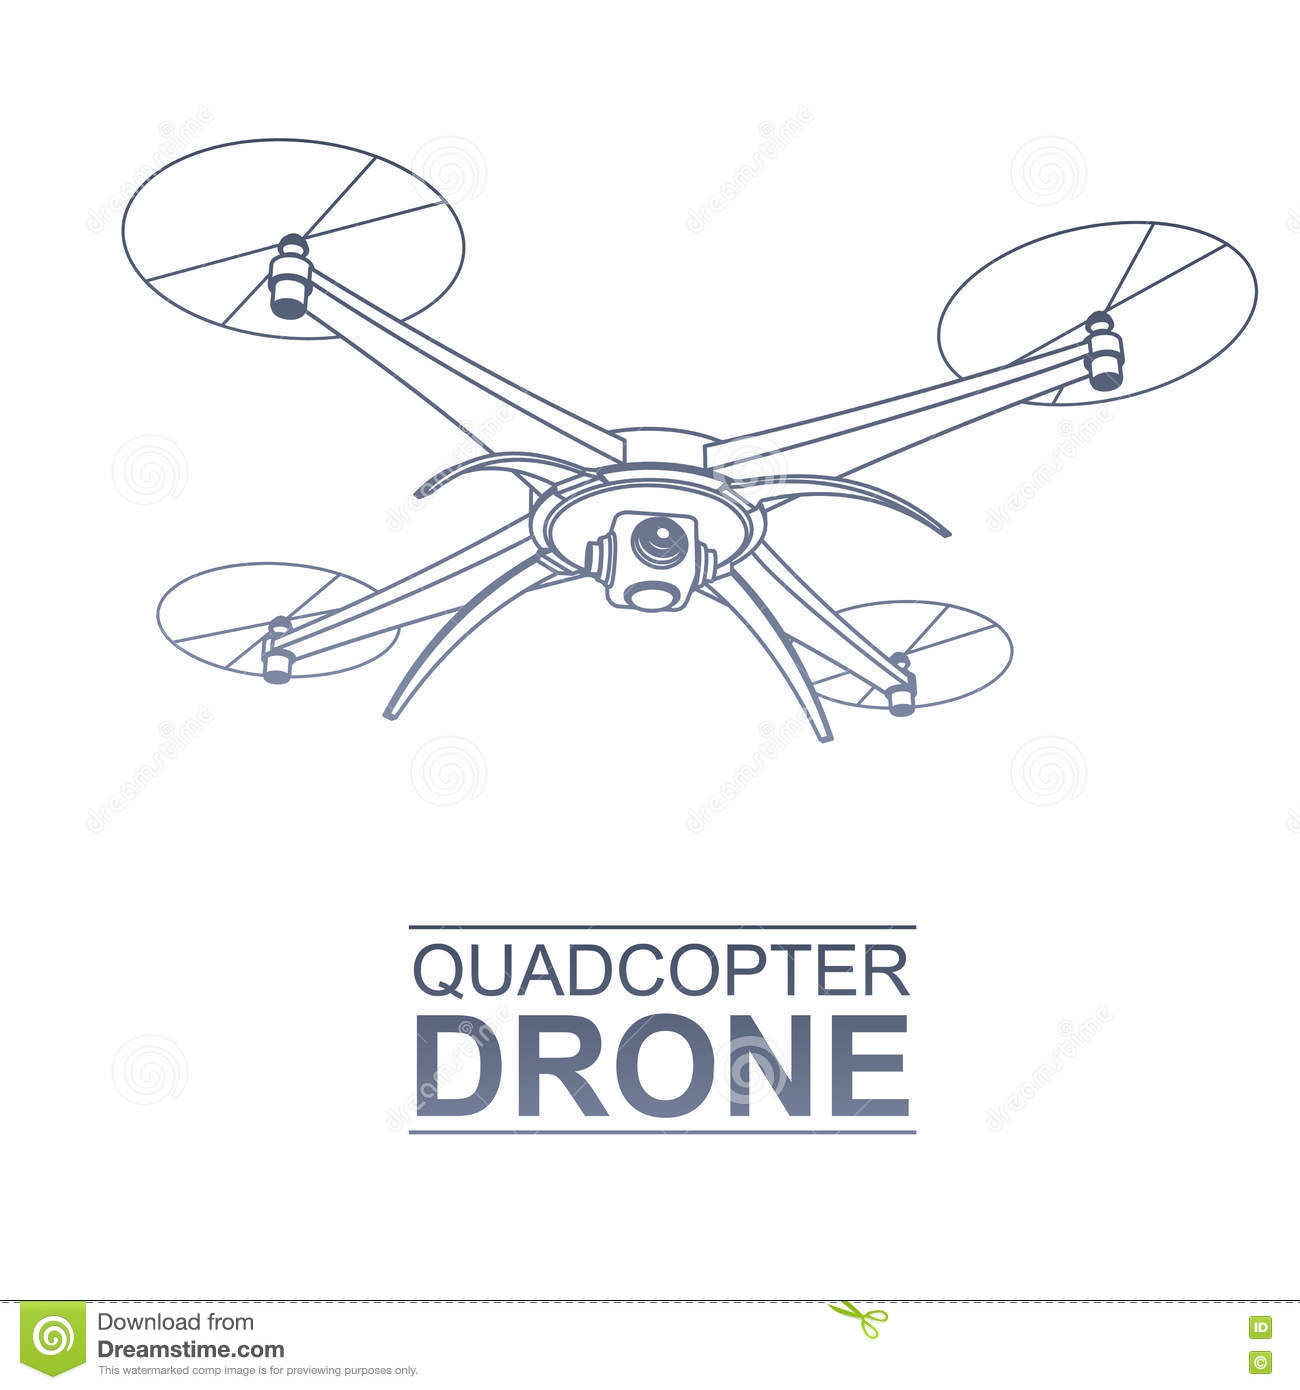 best buy remote helicopter with Black Silhouette Drone Quadrocopter Vector Illustration on Cmp Cub Ep 1830mm Kit also Eachine Racer 180 FPV Drone W F3 6DOF Flight Controller 350mW 5 8G 40CH VTX 1000TVL CCD Camera PNP P 1075395 together with Remote Control Helicopter Hd Video Camera 4k furthermore Seabreacher Shark X Water Jet likewise Taotuo Lipo Battery 11 1v 2200mah 3s 25c T Dean Style Plug For Rc Fpv Helicopter Qudcopter Car Truck Boat Airplane Bateria Lipo.